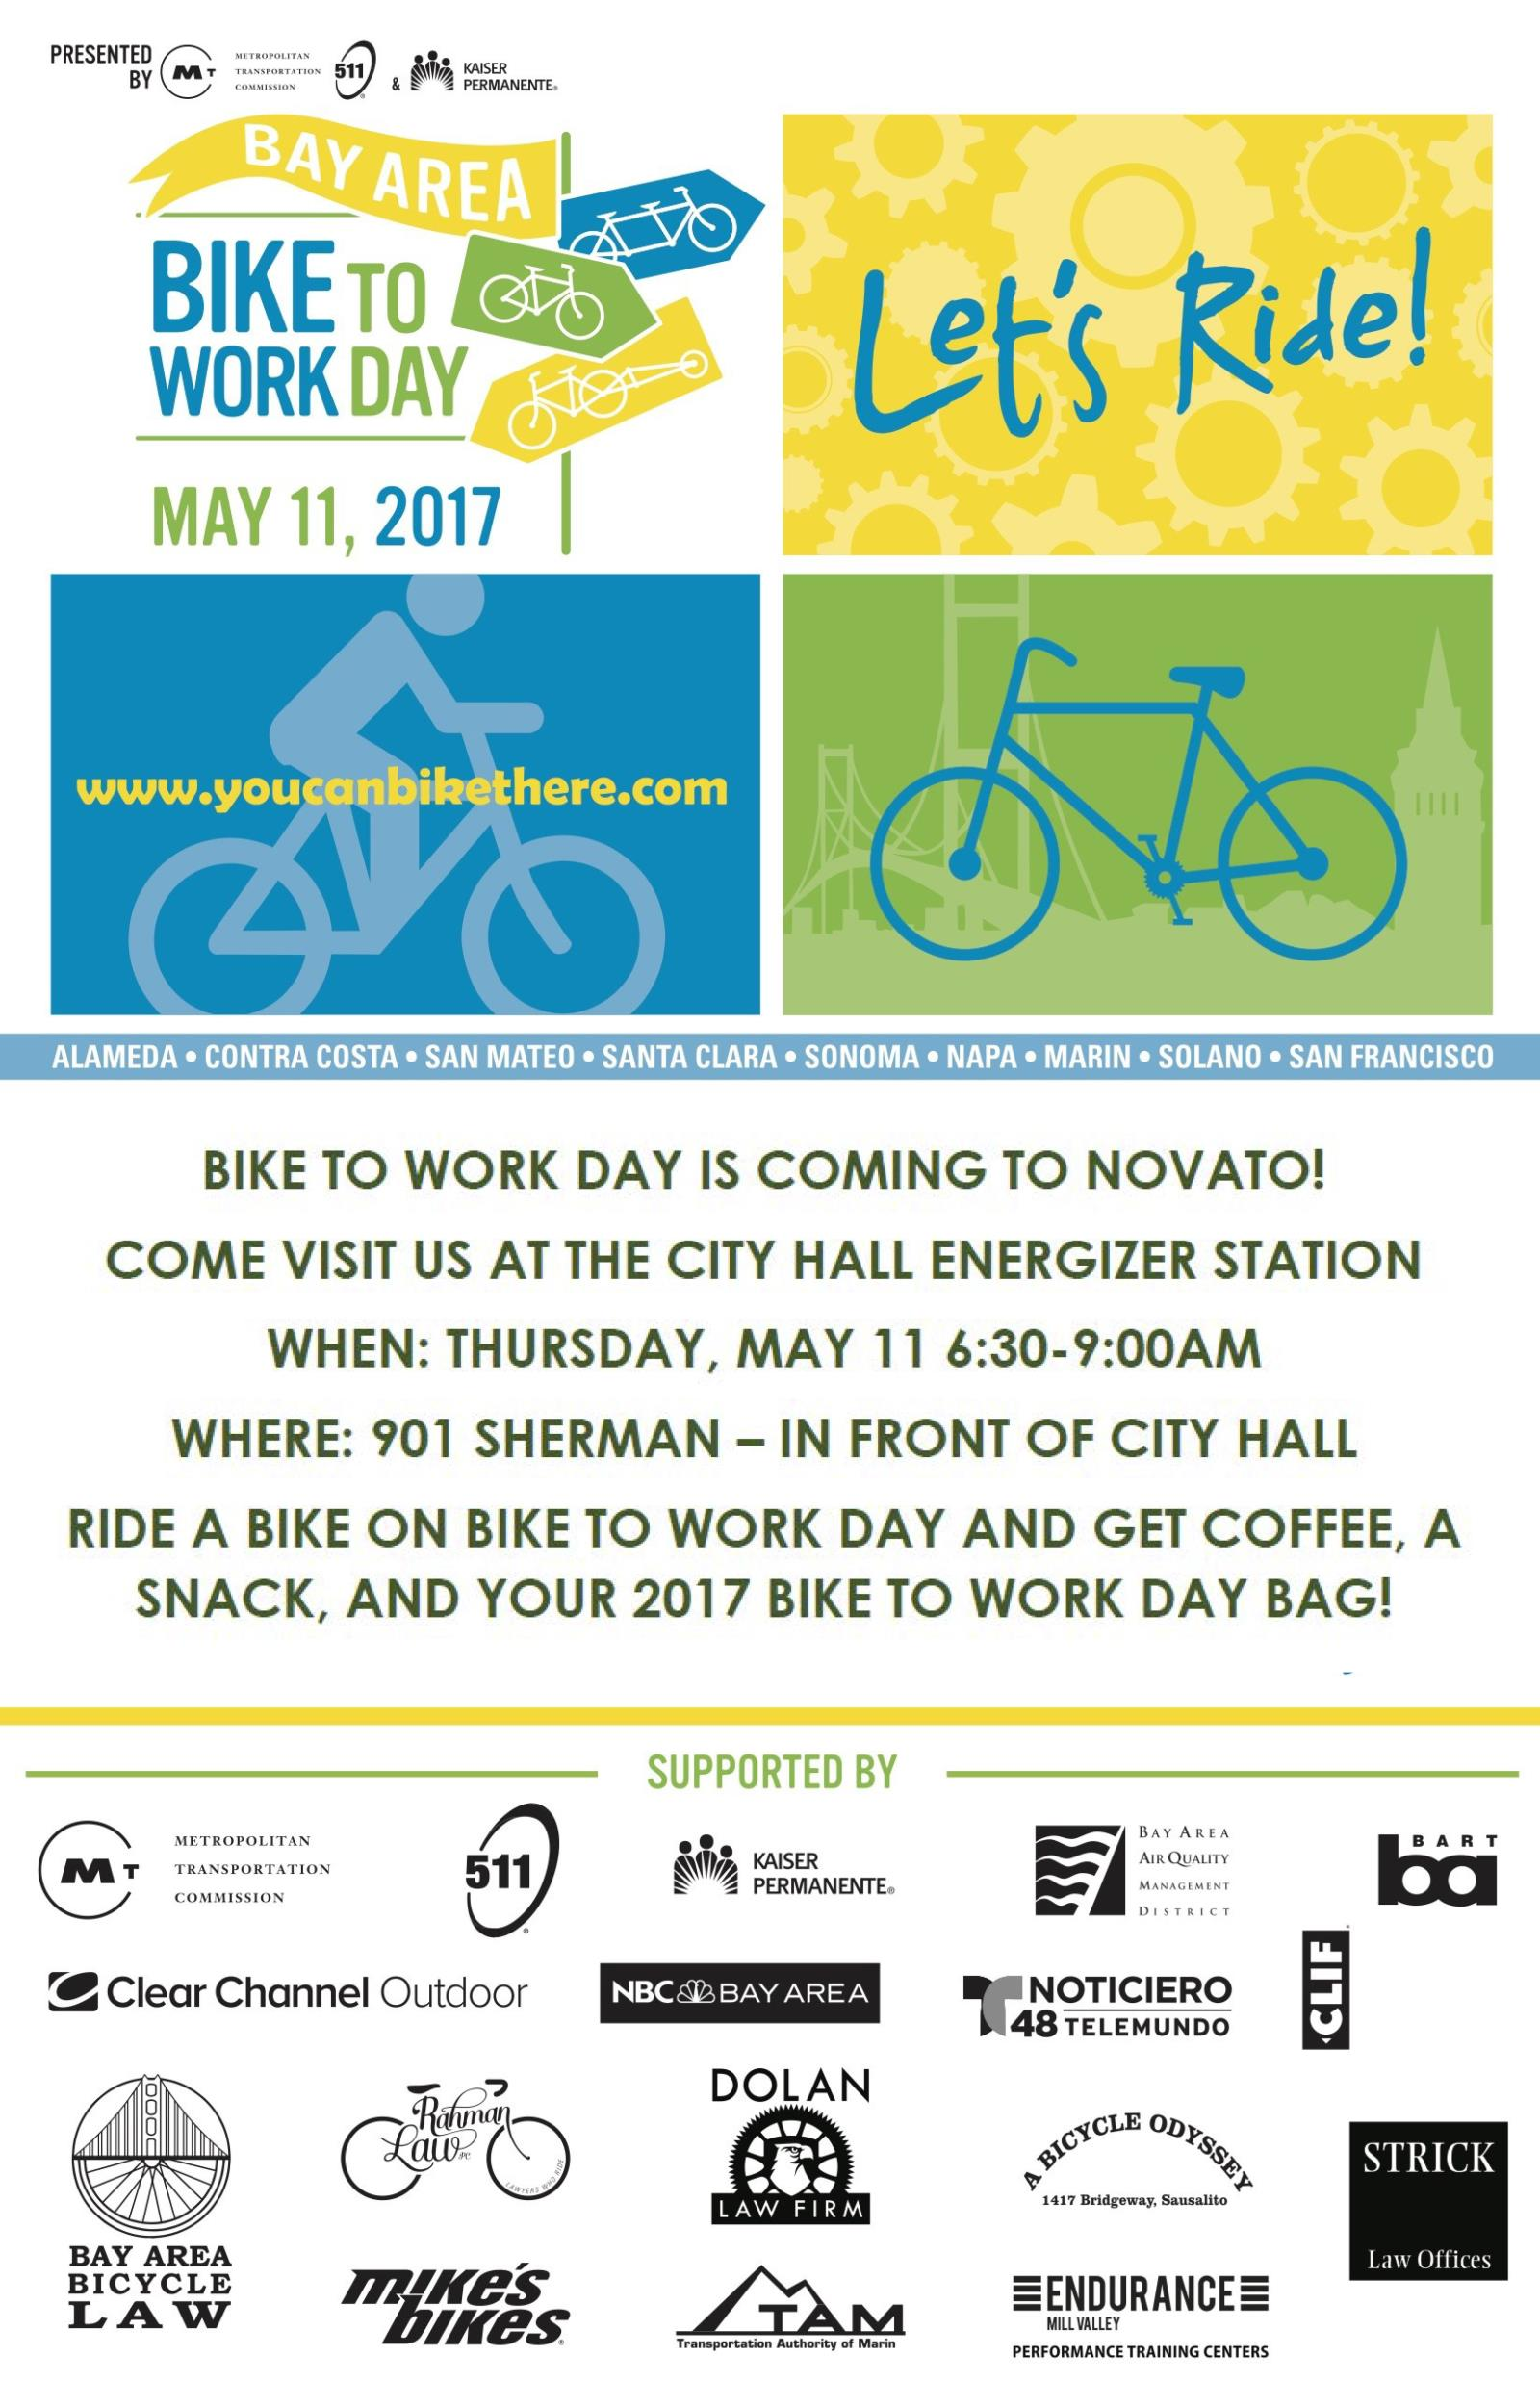 image of bike to work day flyer